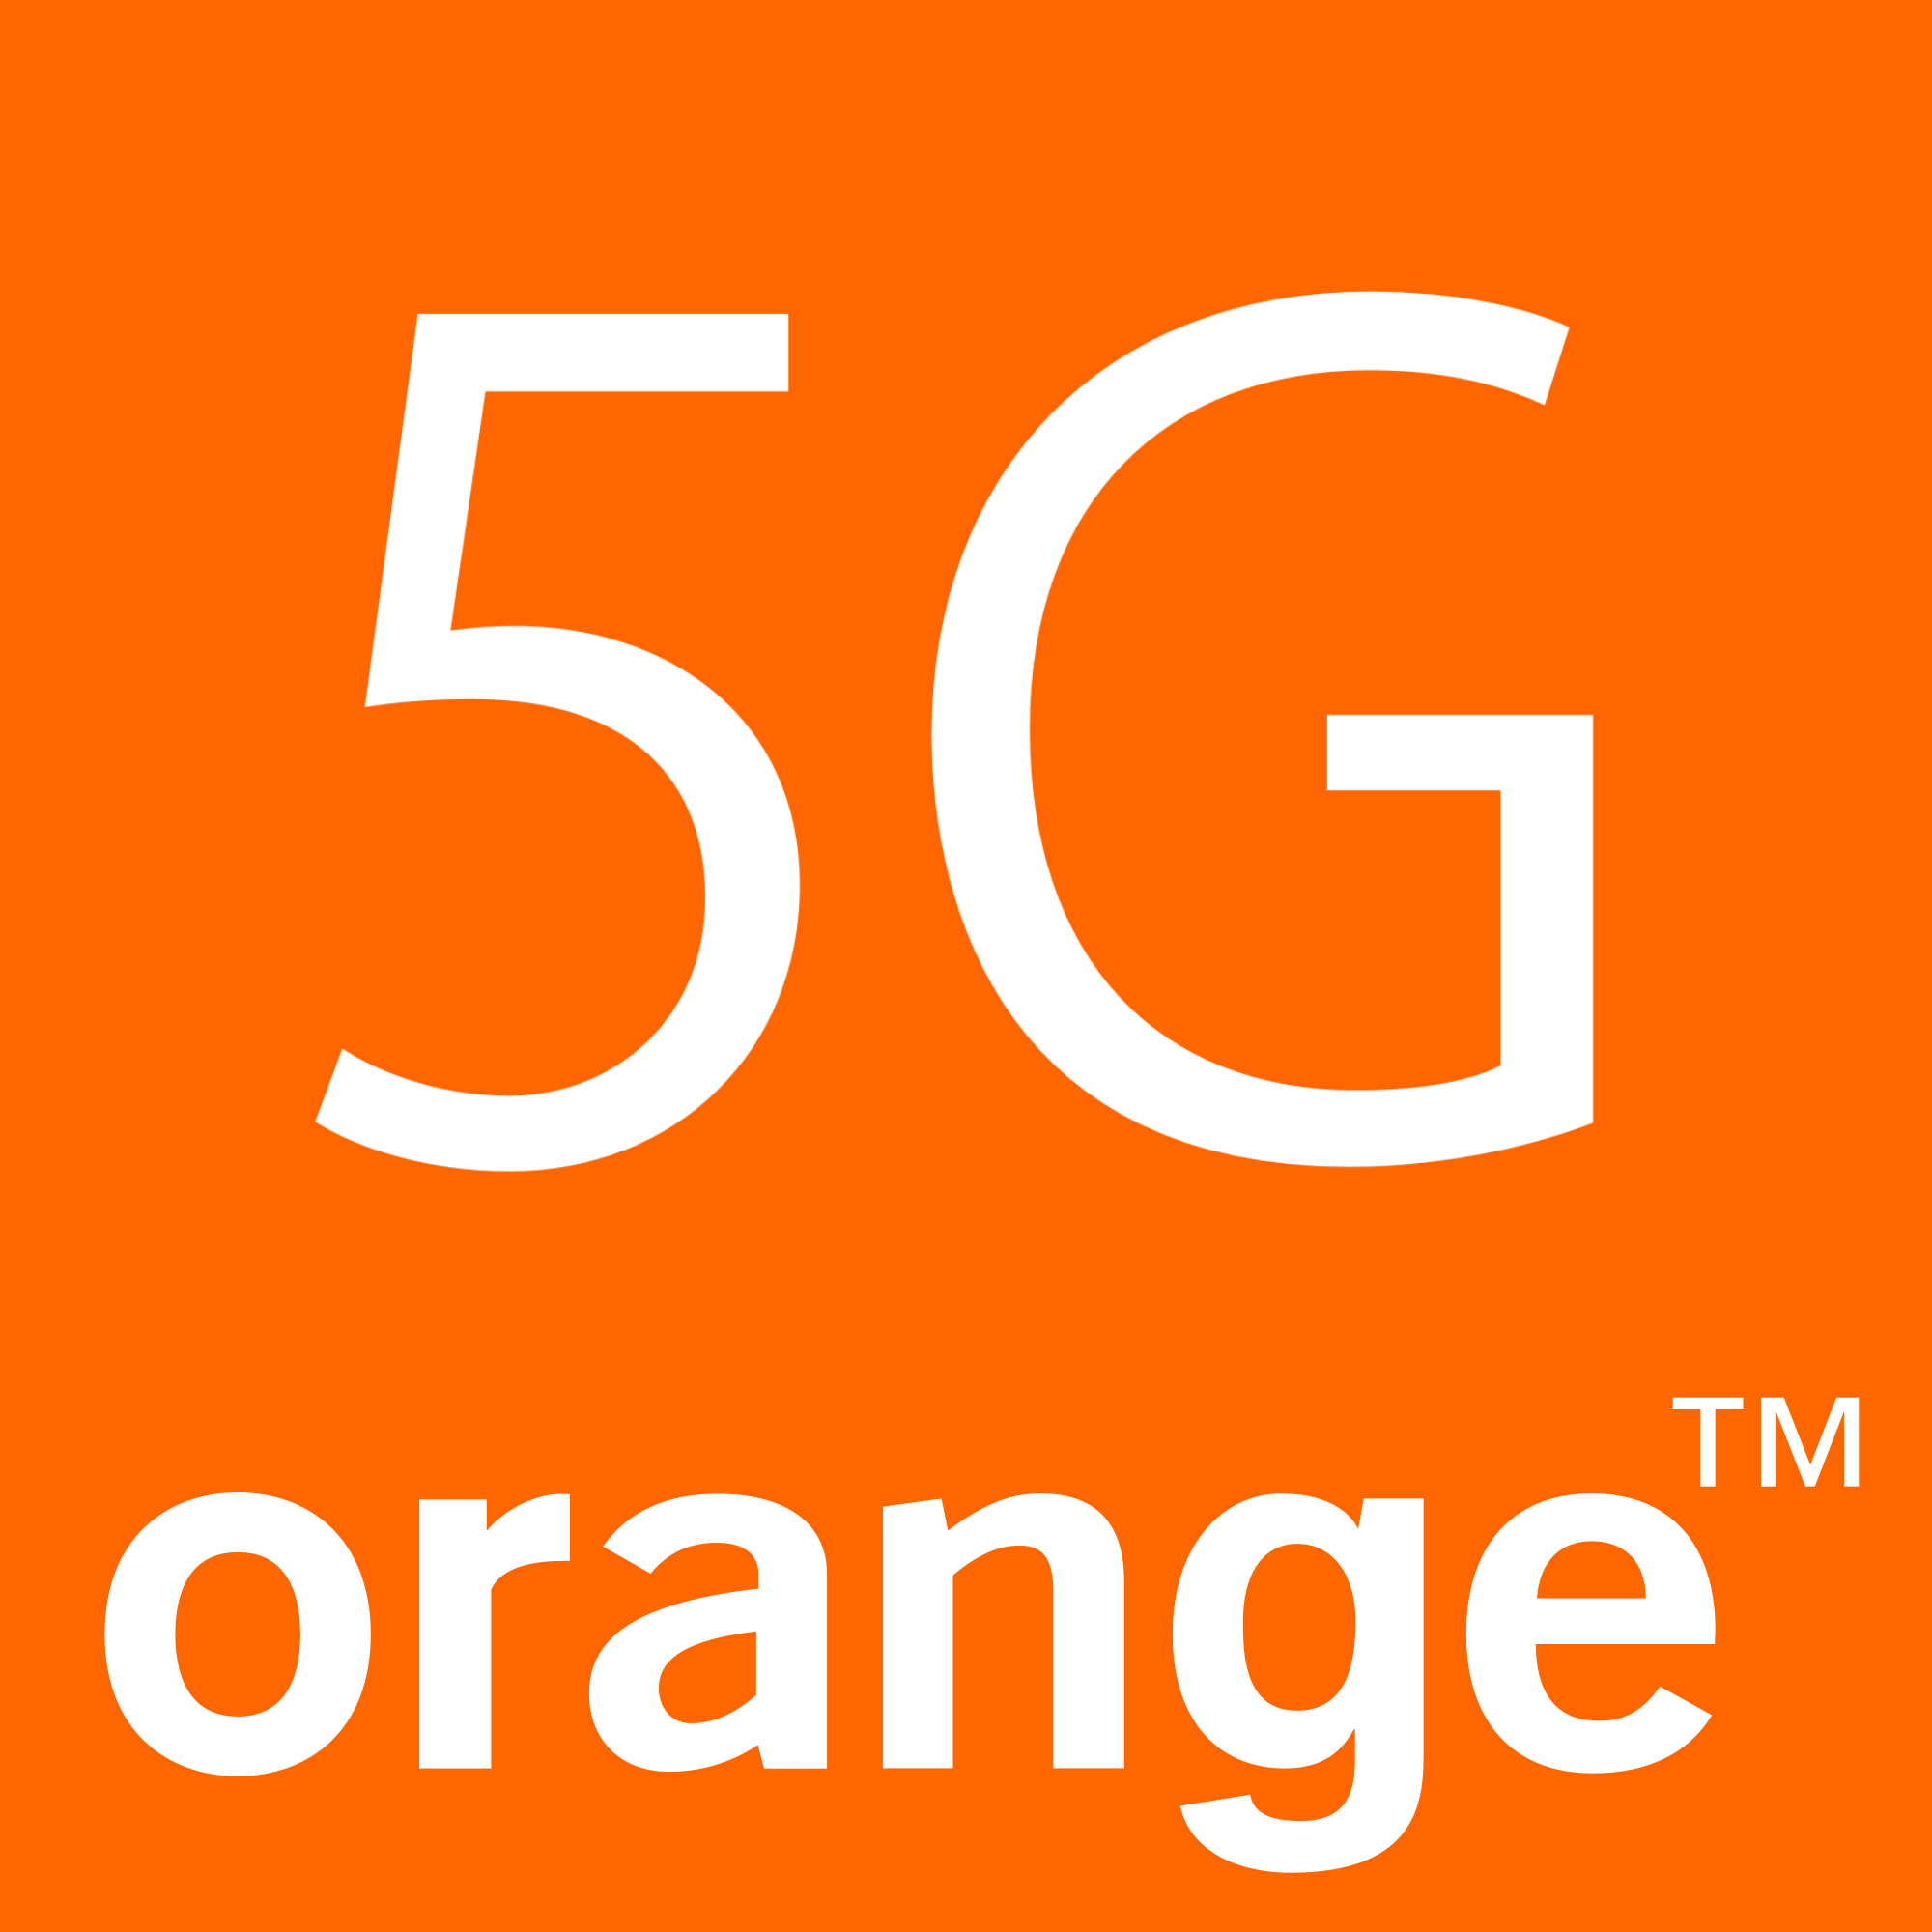 orange va commencer  u00e0 tester la 5g en france